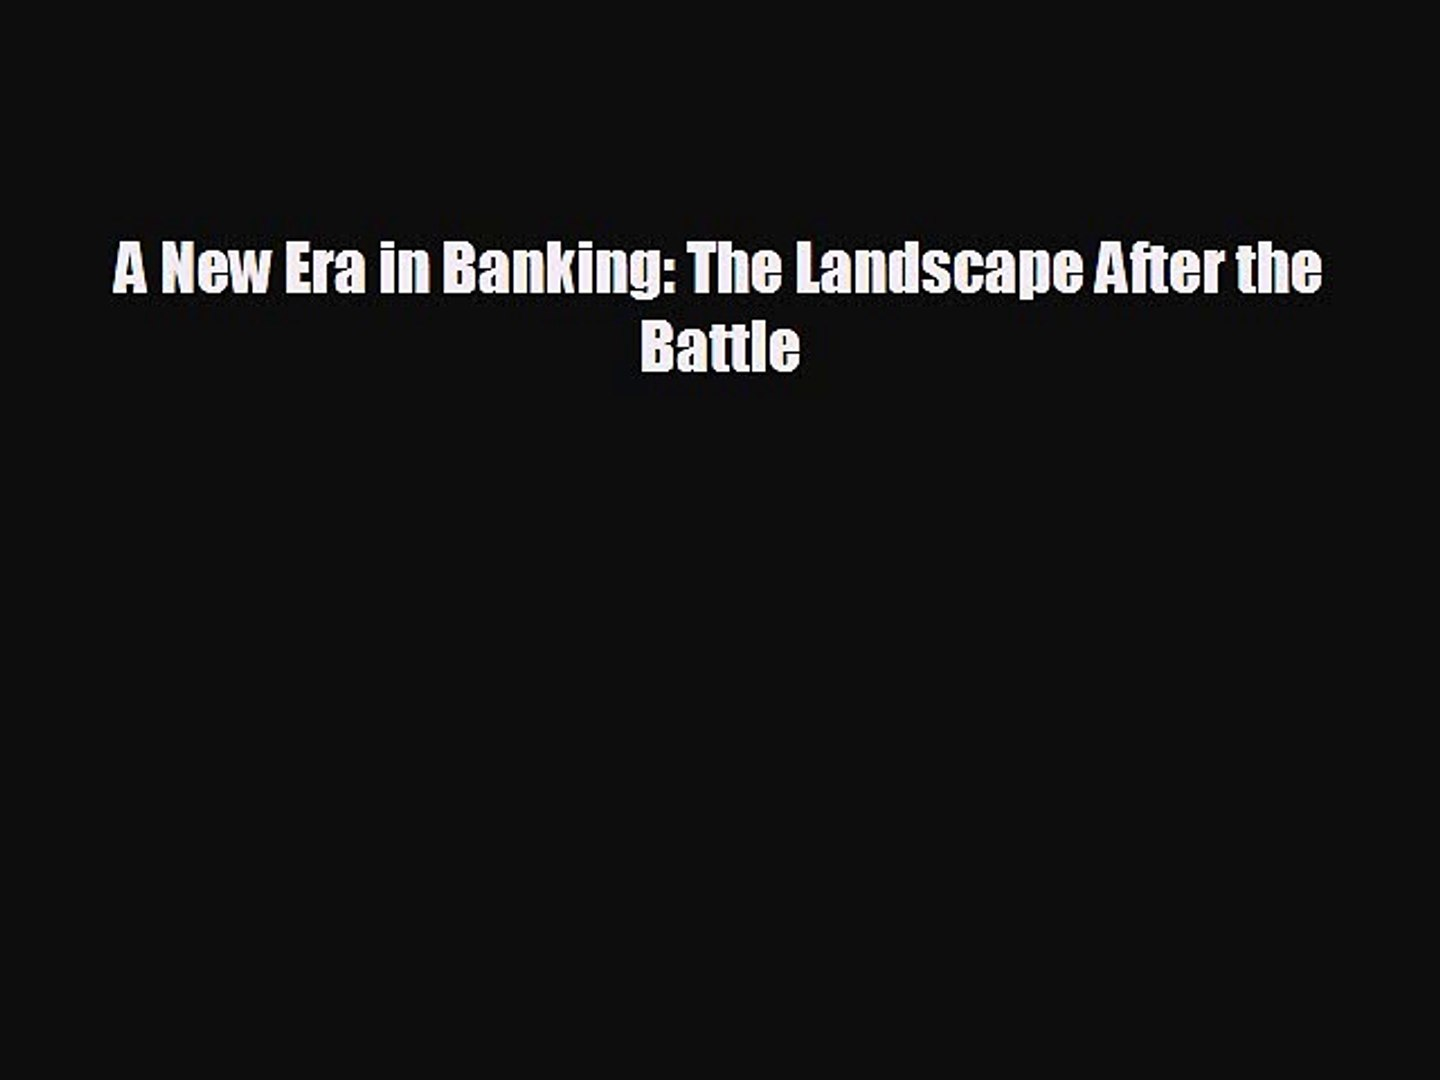 Pdf online A New Era in Banking: The Landscape After the Battle